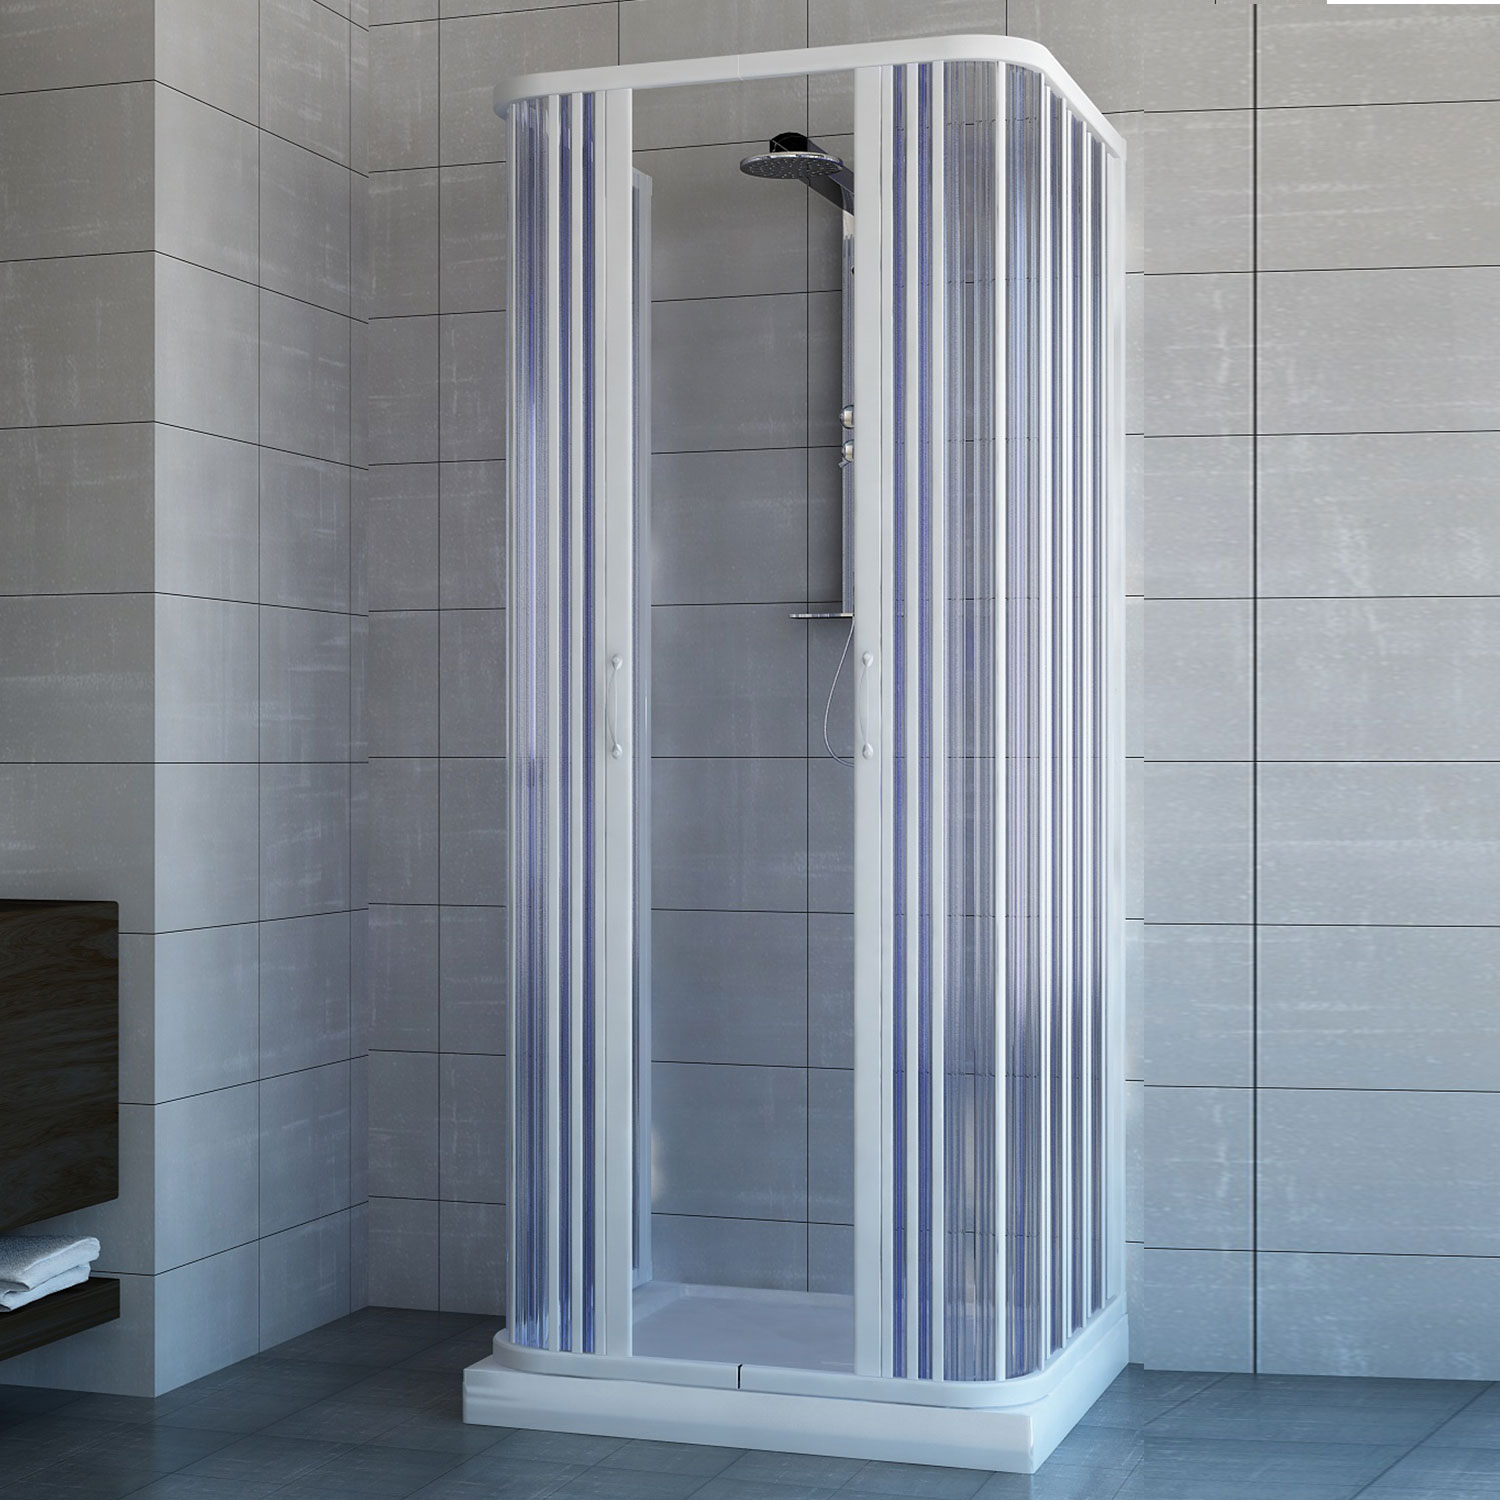 Outdoor Duschkabine Shower Enclosure 3 Sided Central Open Quadrant Cubicle